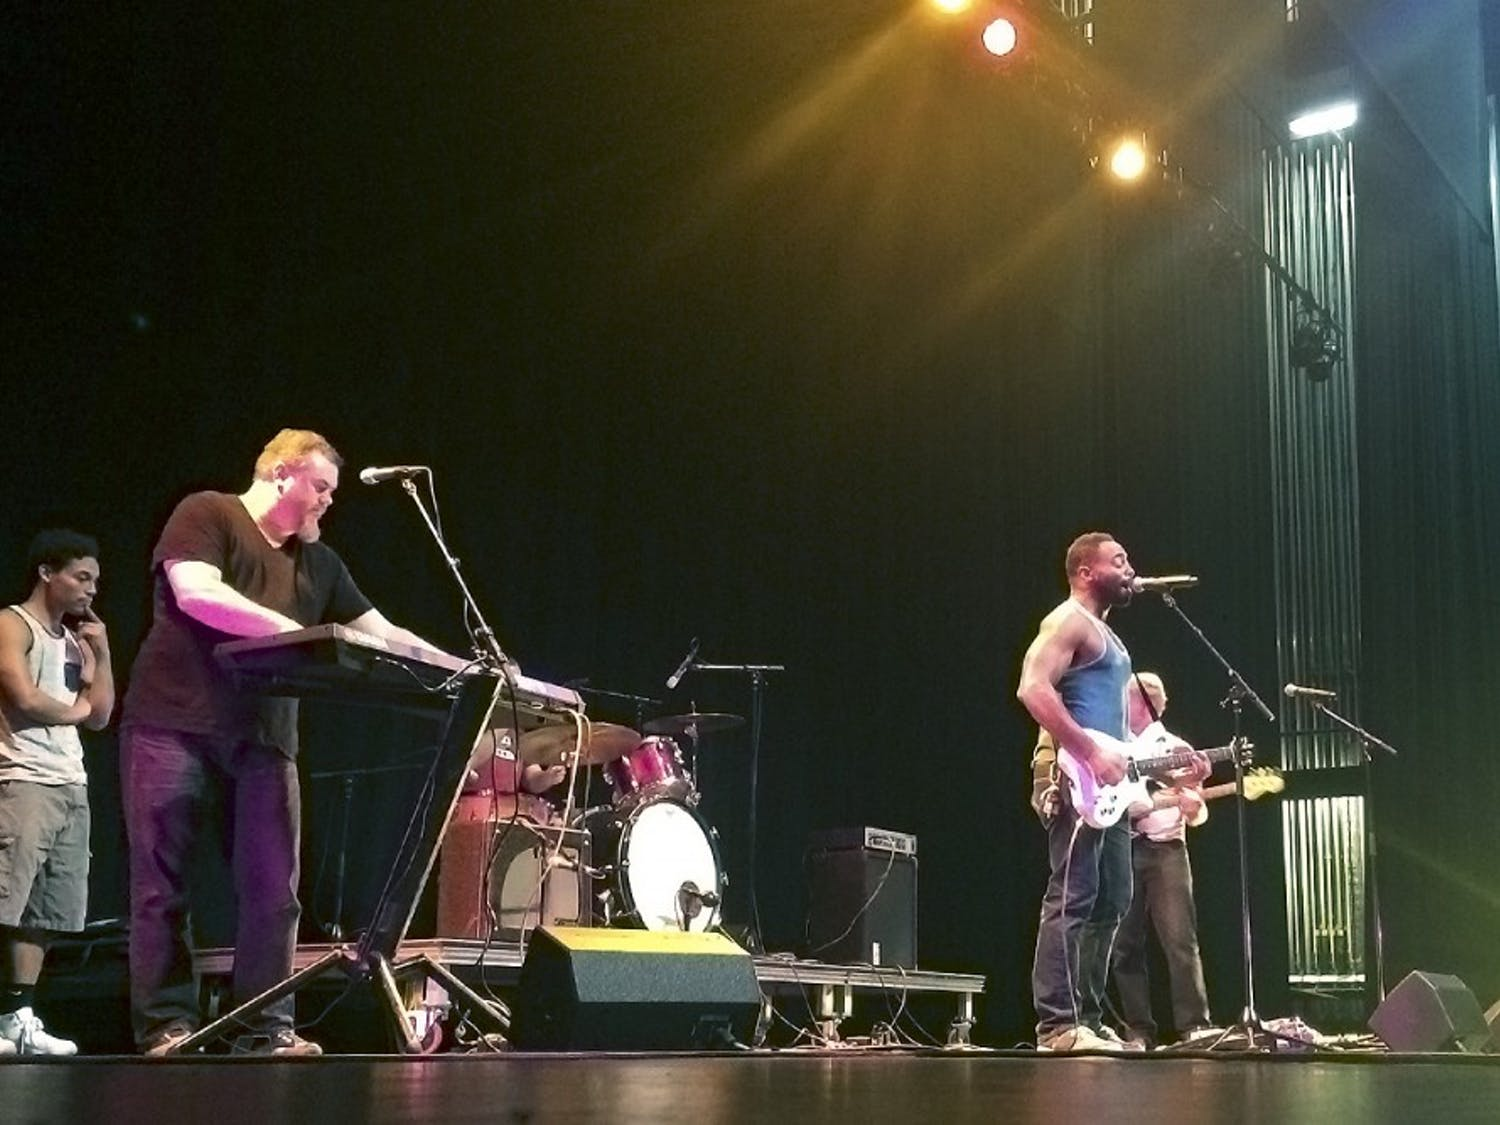 Skinny Bag of Sugar, a Carrboro rock band, performs in Pulso Pulso, a performance celebrating Spanish and English cultures (Courtesy of Augusta DeKemper).